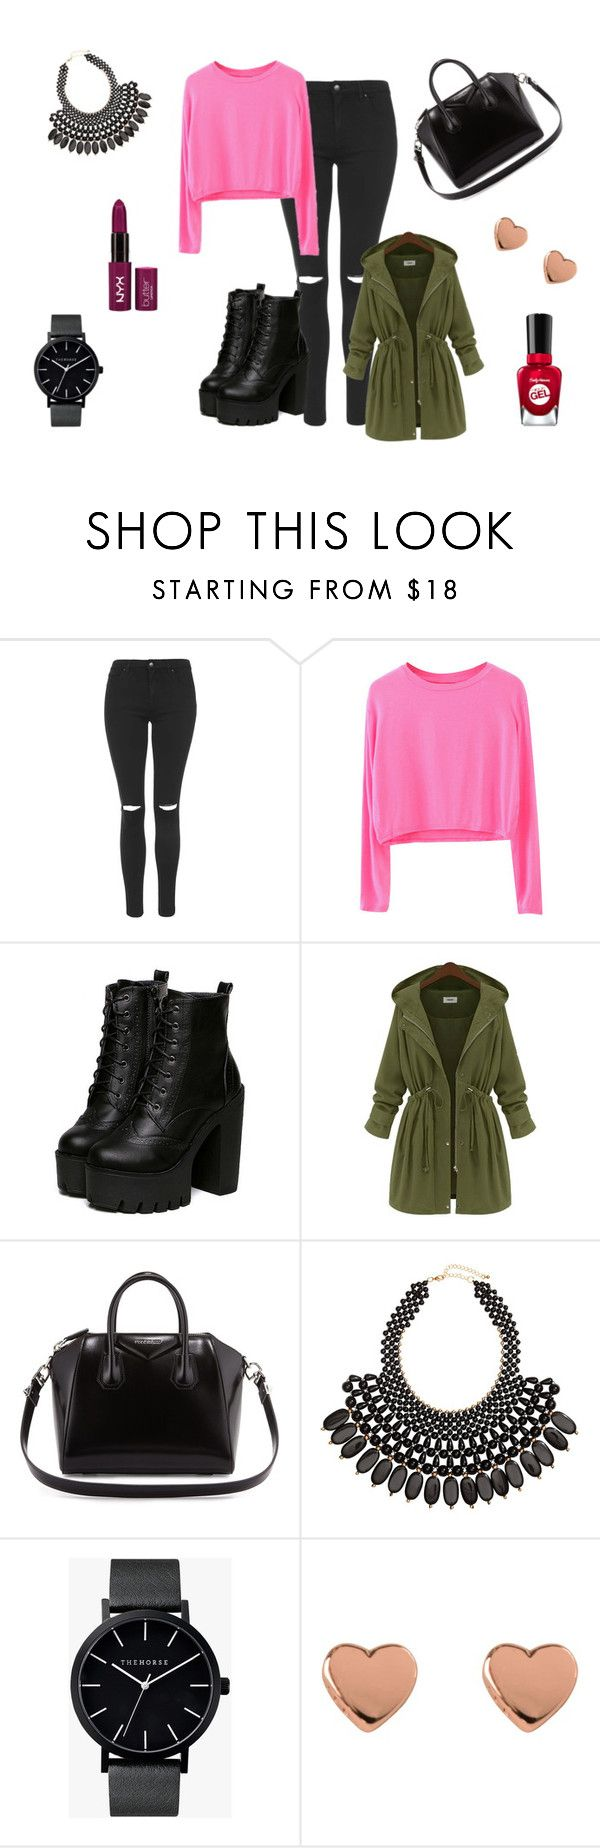 """So i think I 'm beautiful today"" by dagusia112 on Polyvore featuring moda, Topshop, Givenchy, H&M, The Horse, Ted Baker i Sally Hansen"